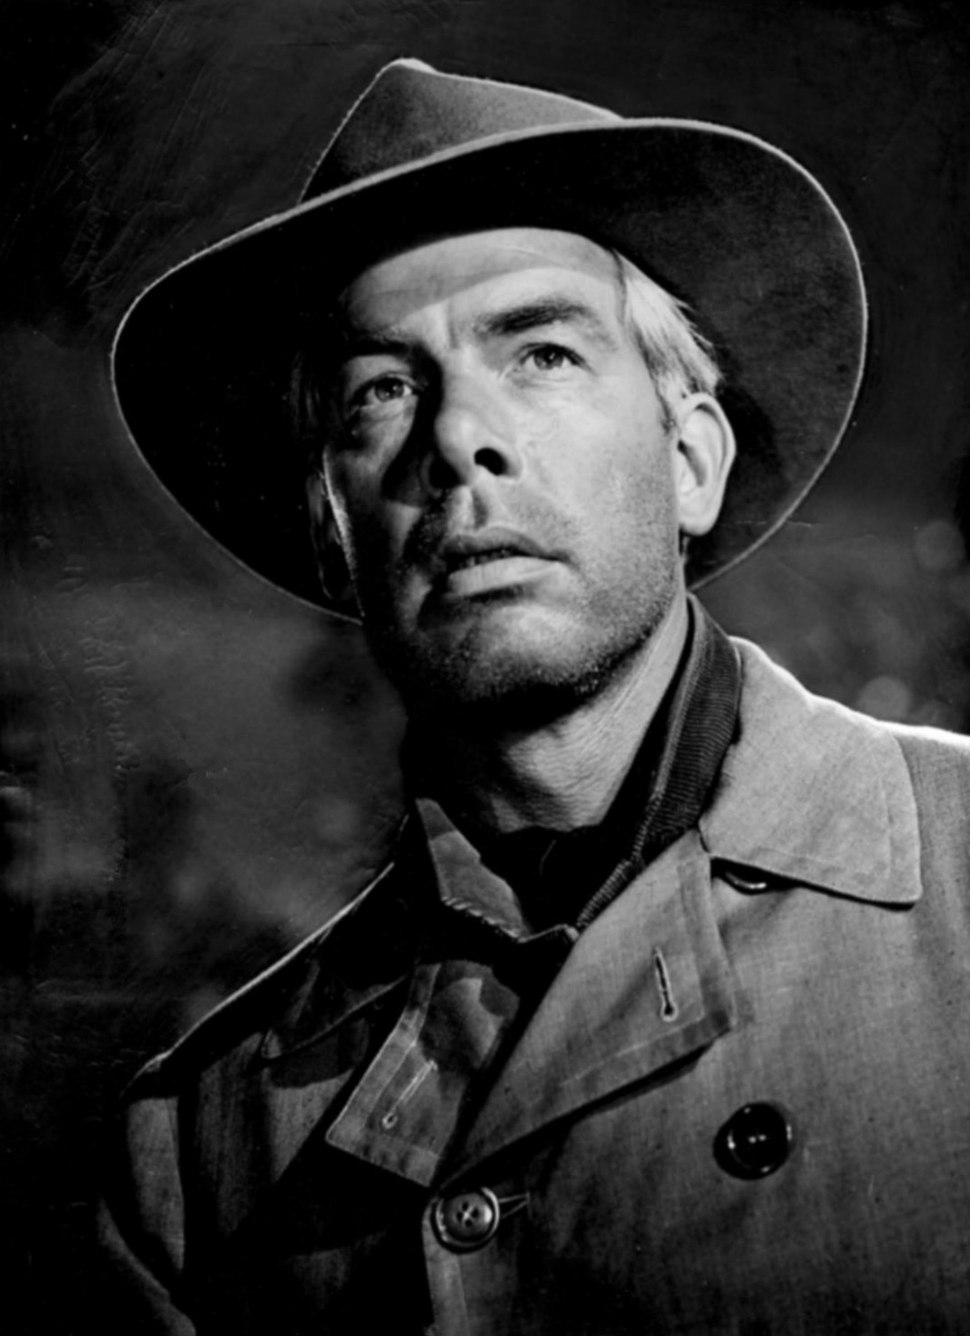 Lee Marvin Twilight Zone 1961